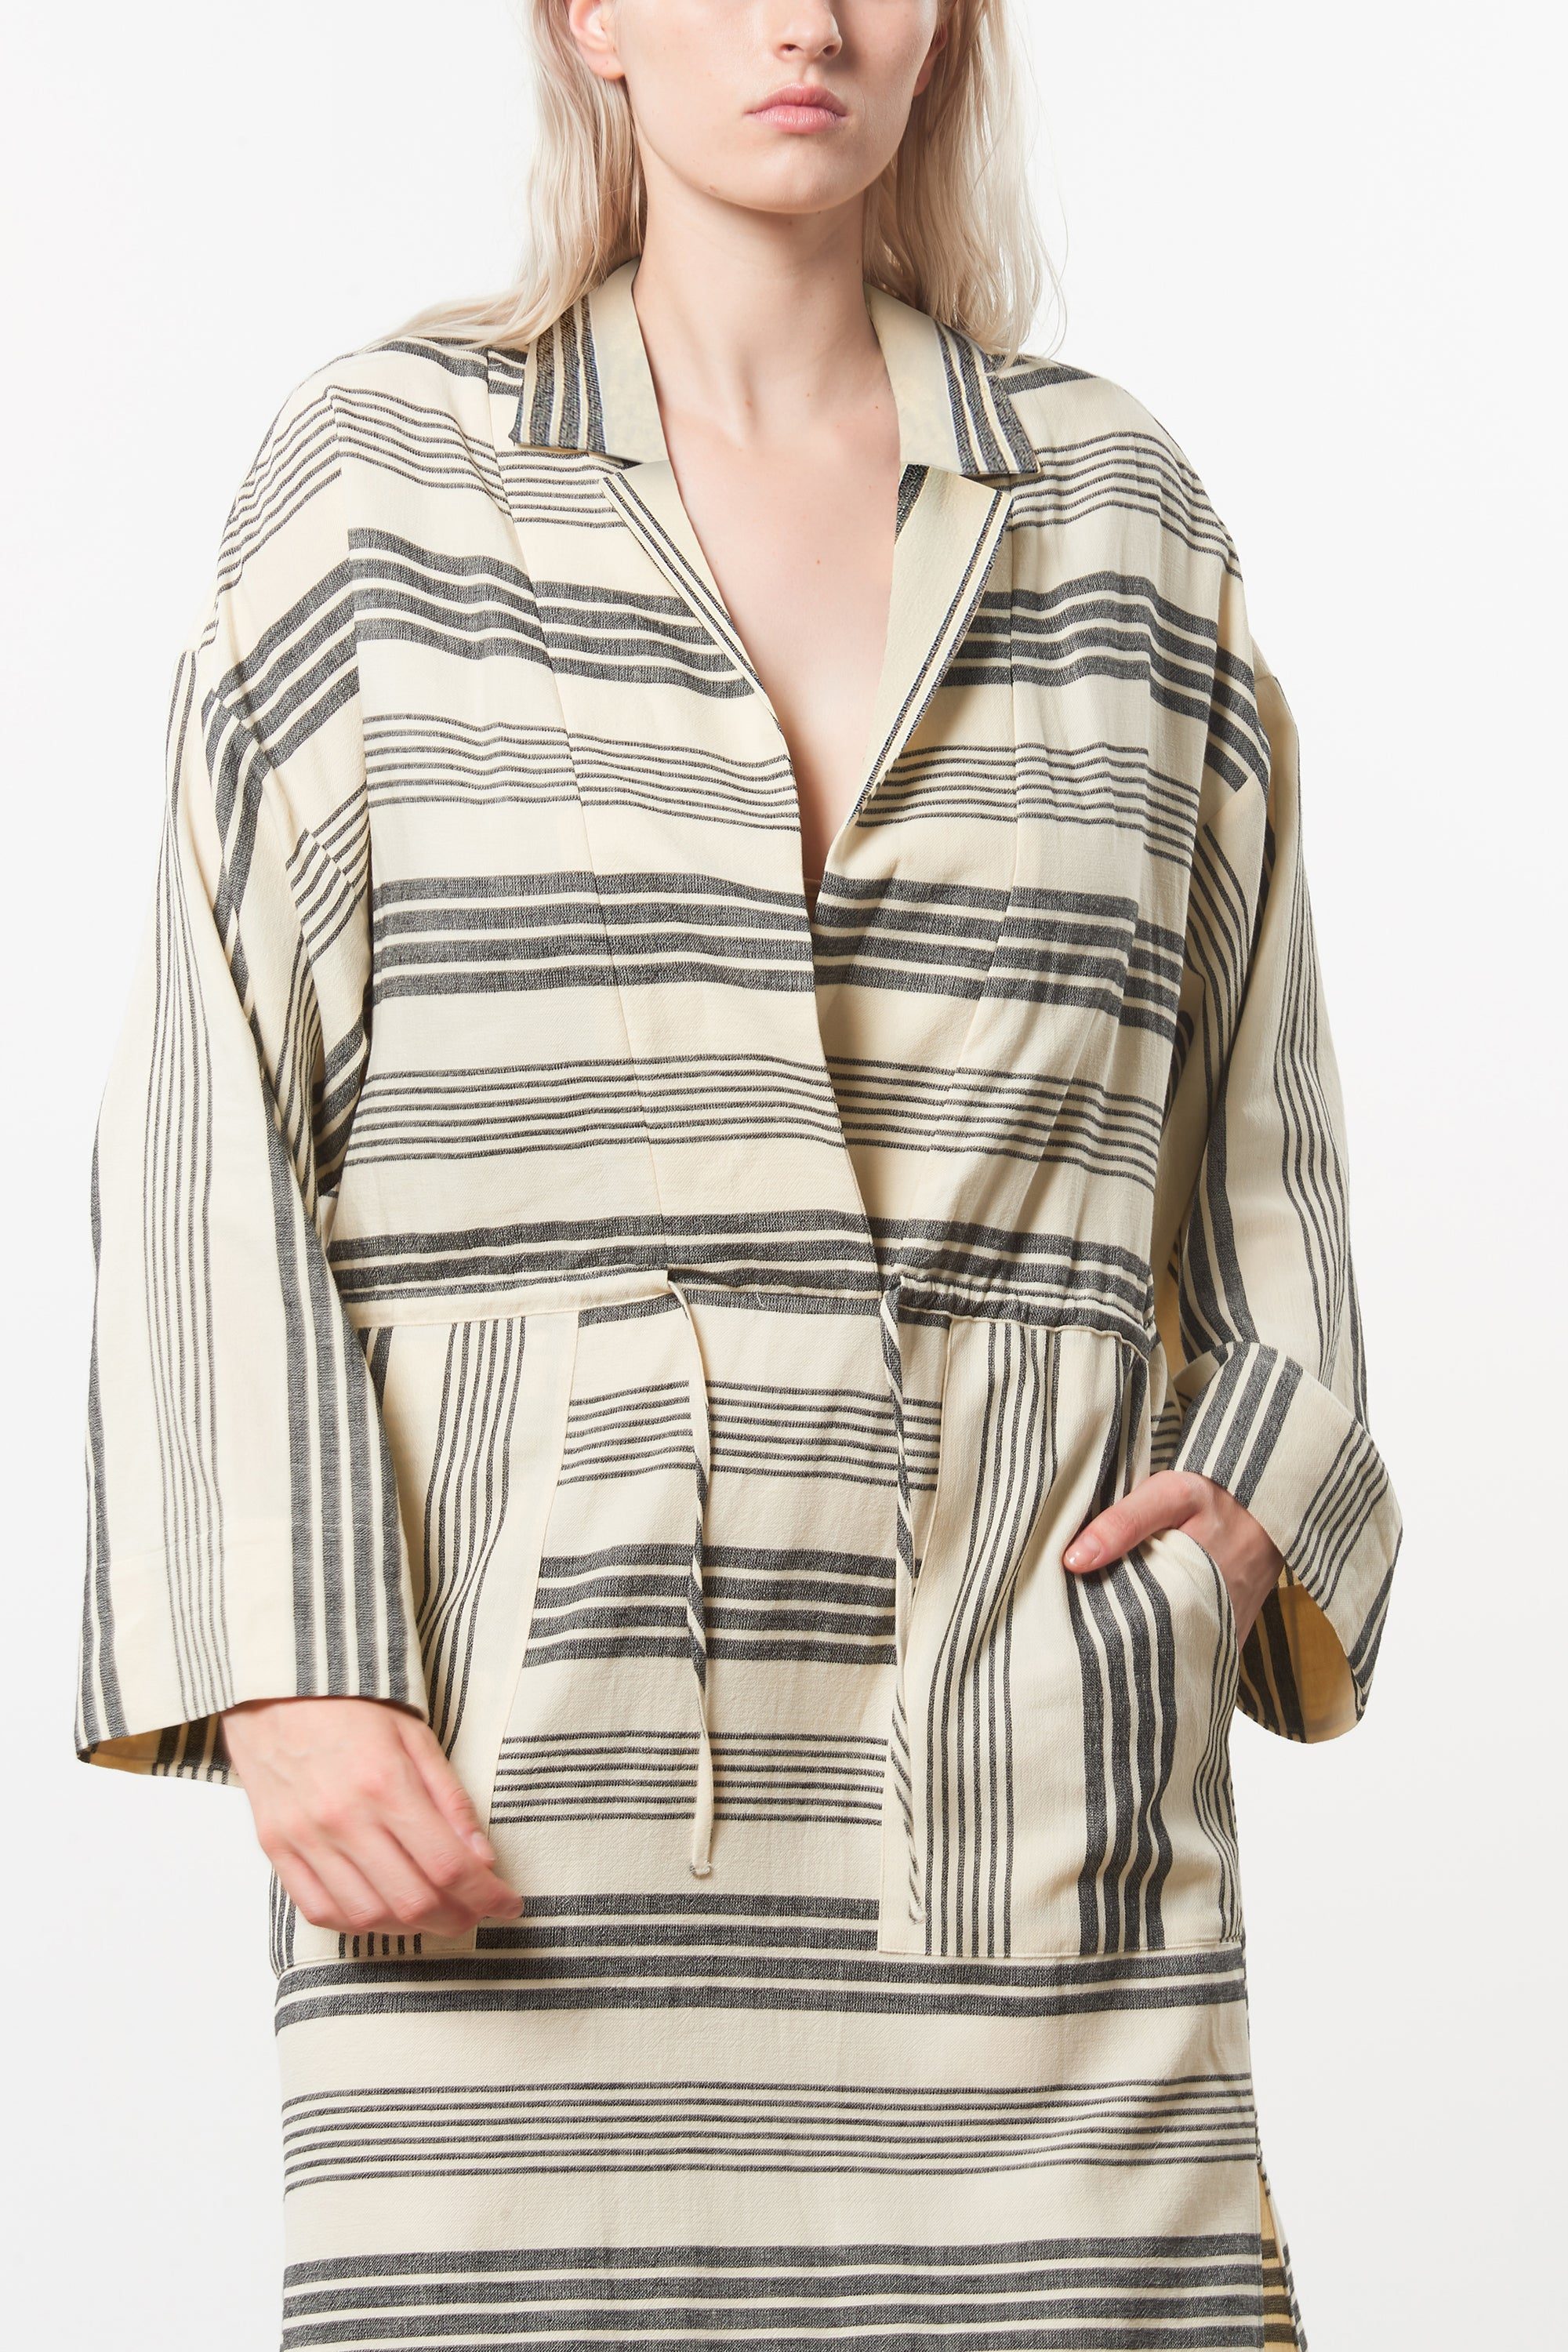 Mara Hoffman Extended Diega Coverup Dress in black striped cotton TENCEL Lyocell blend (detail)